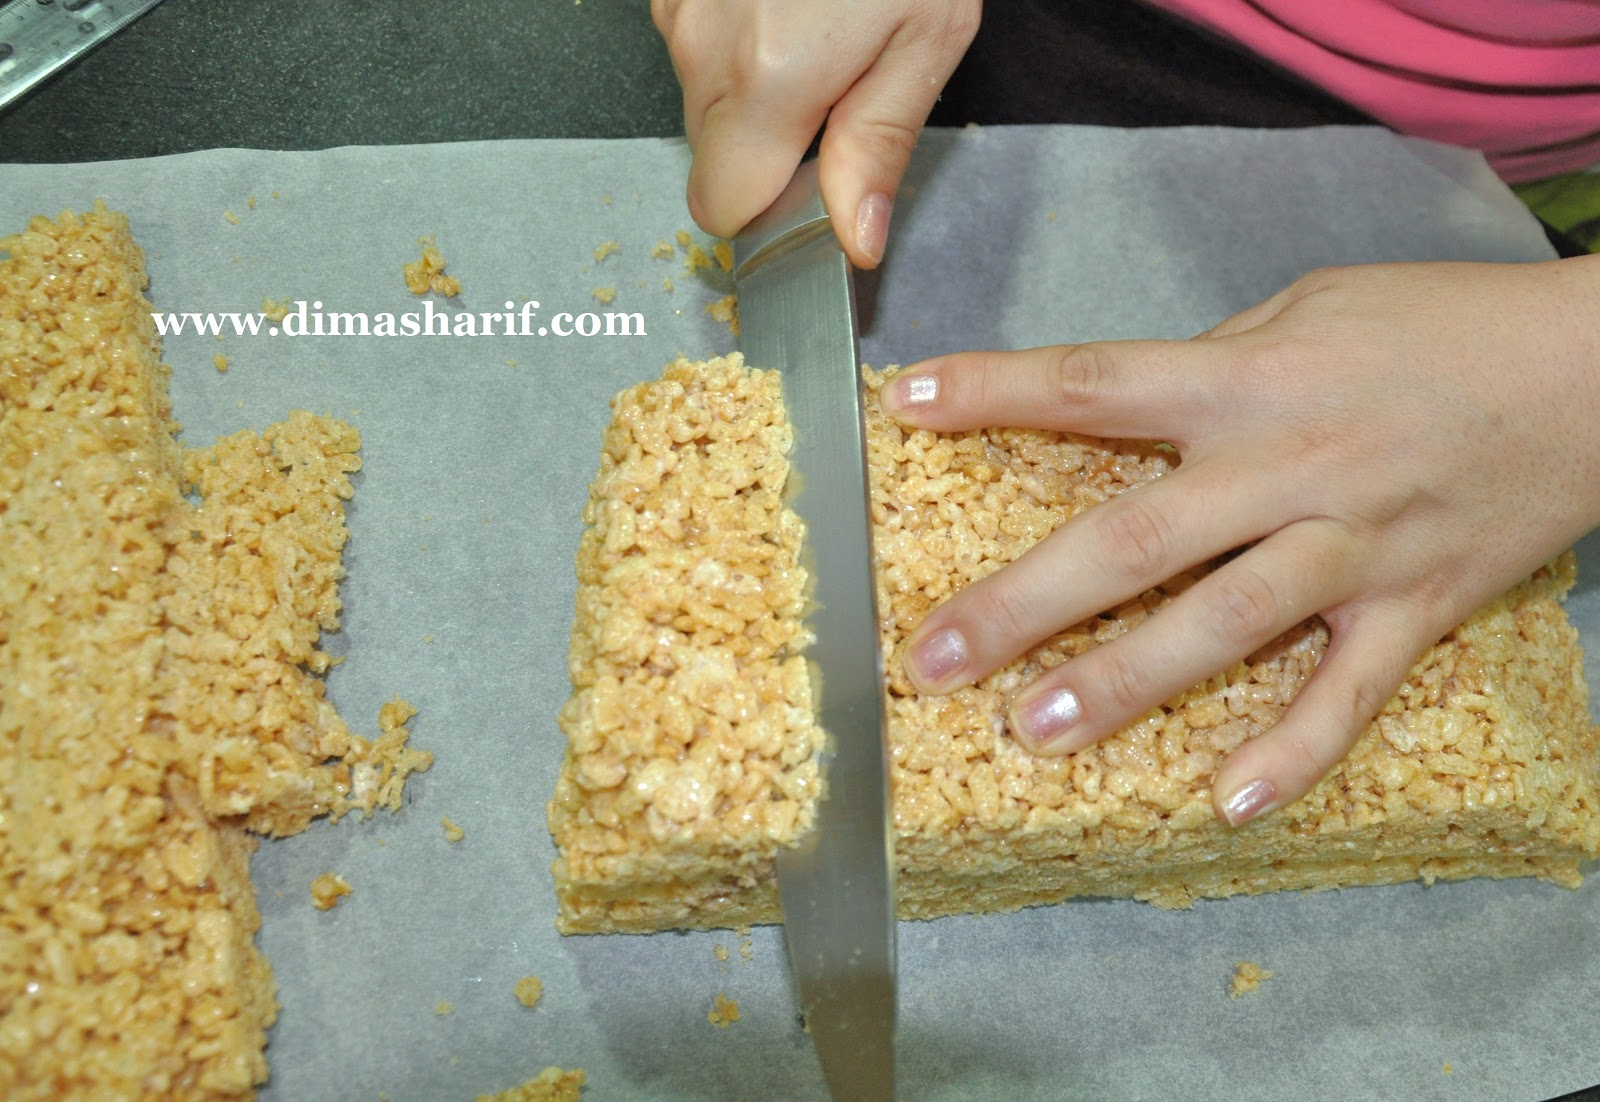 Cereal treats for cakes recipe